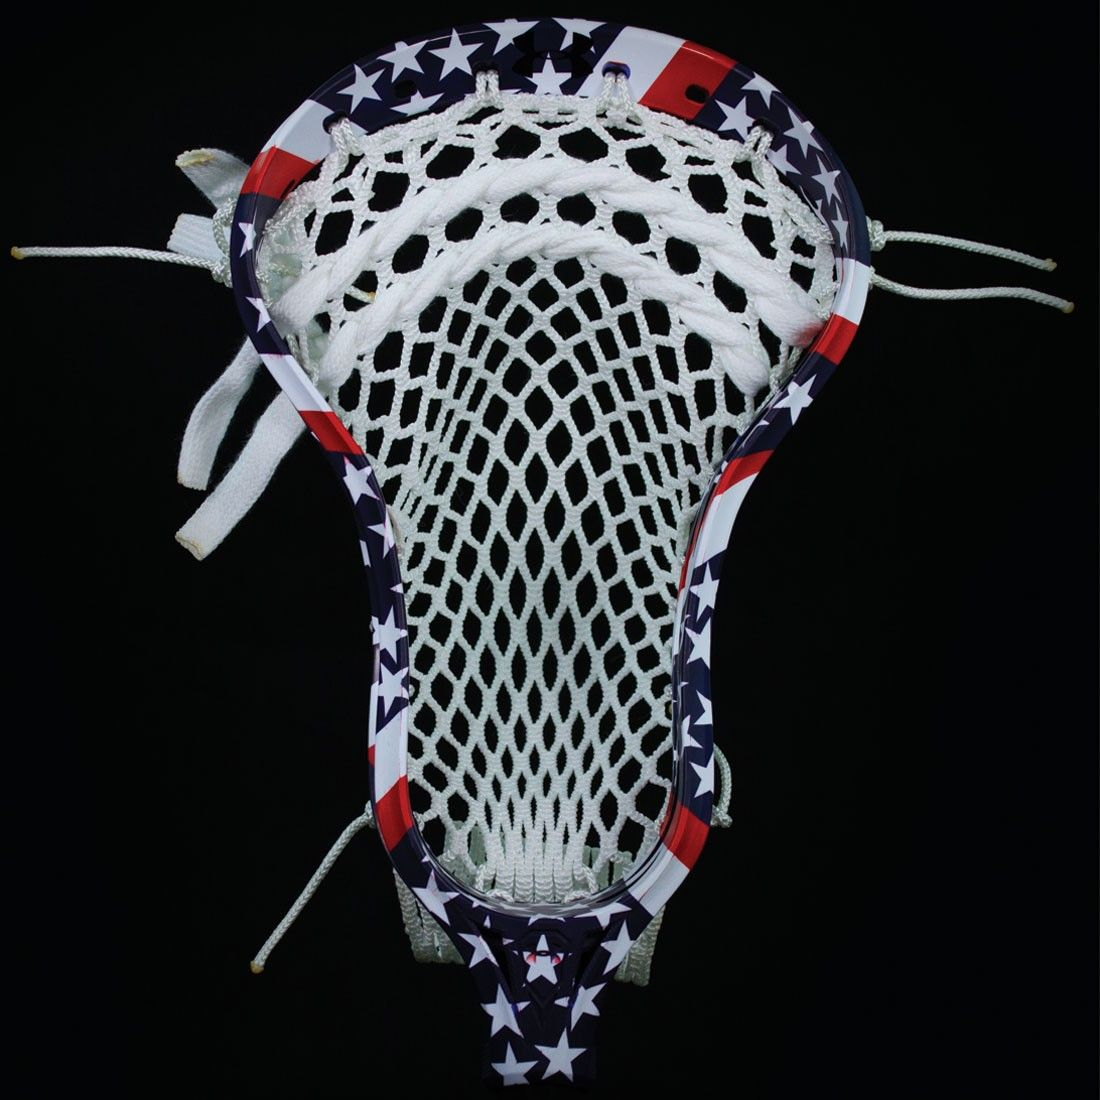 Usa Eruption Complete Head Headed Lacrosse Completed